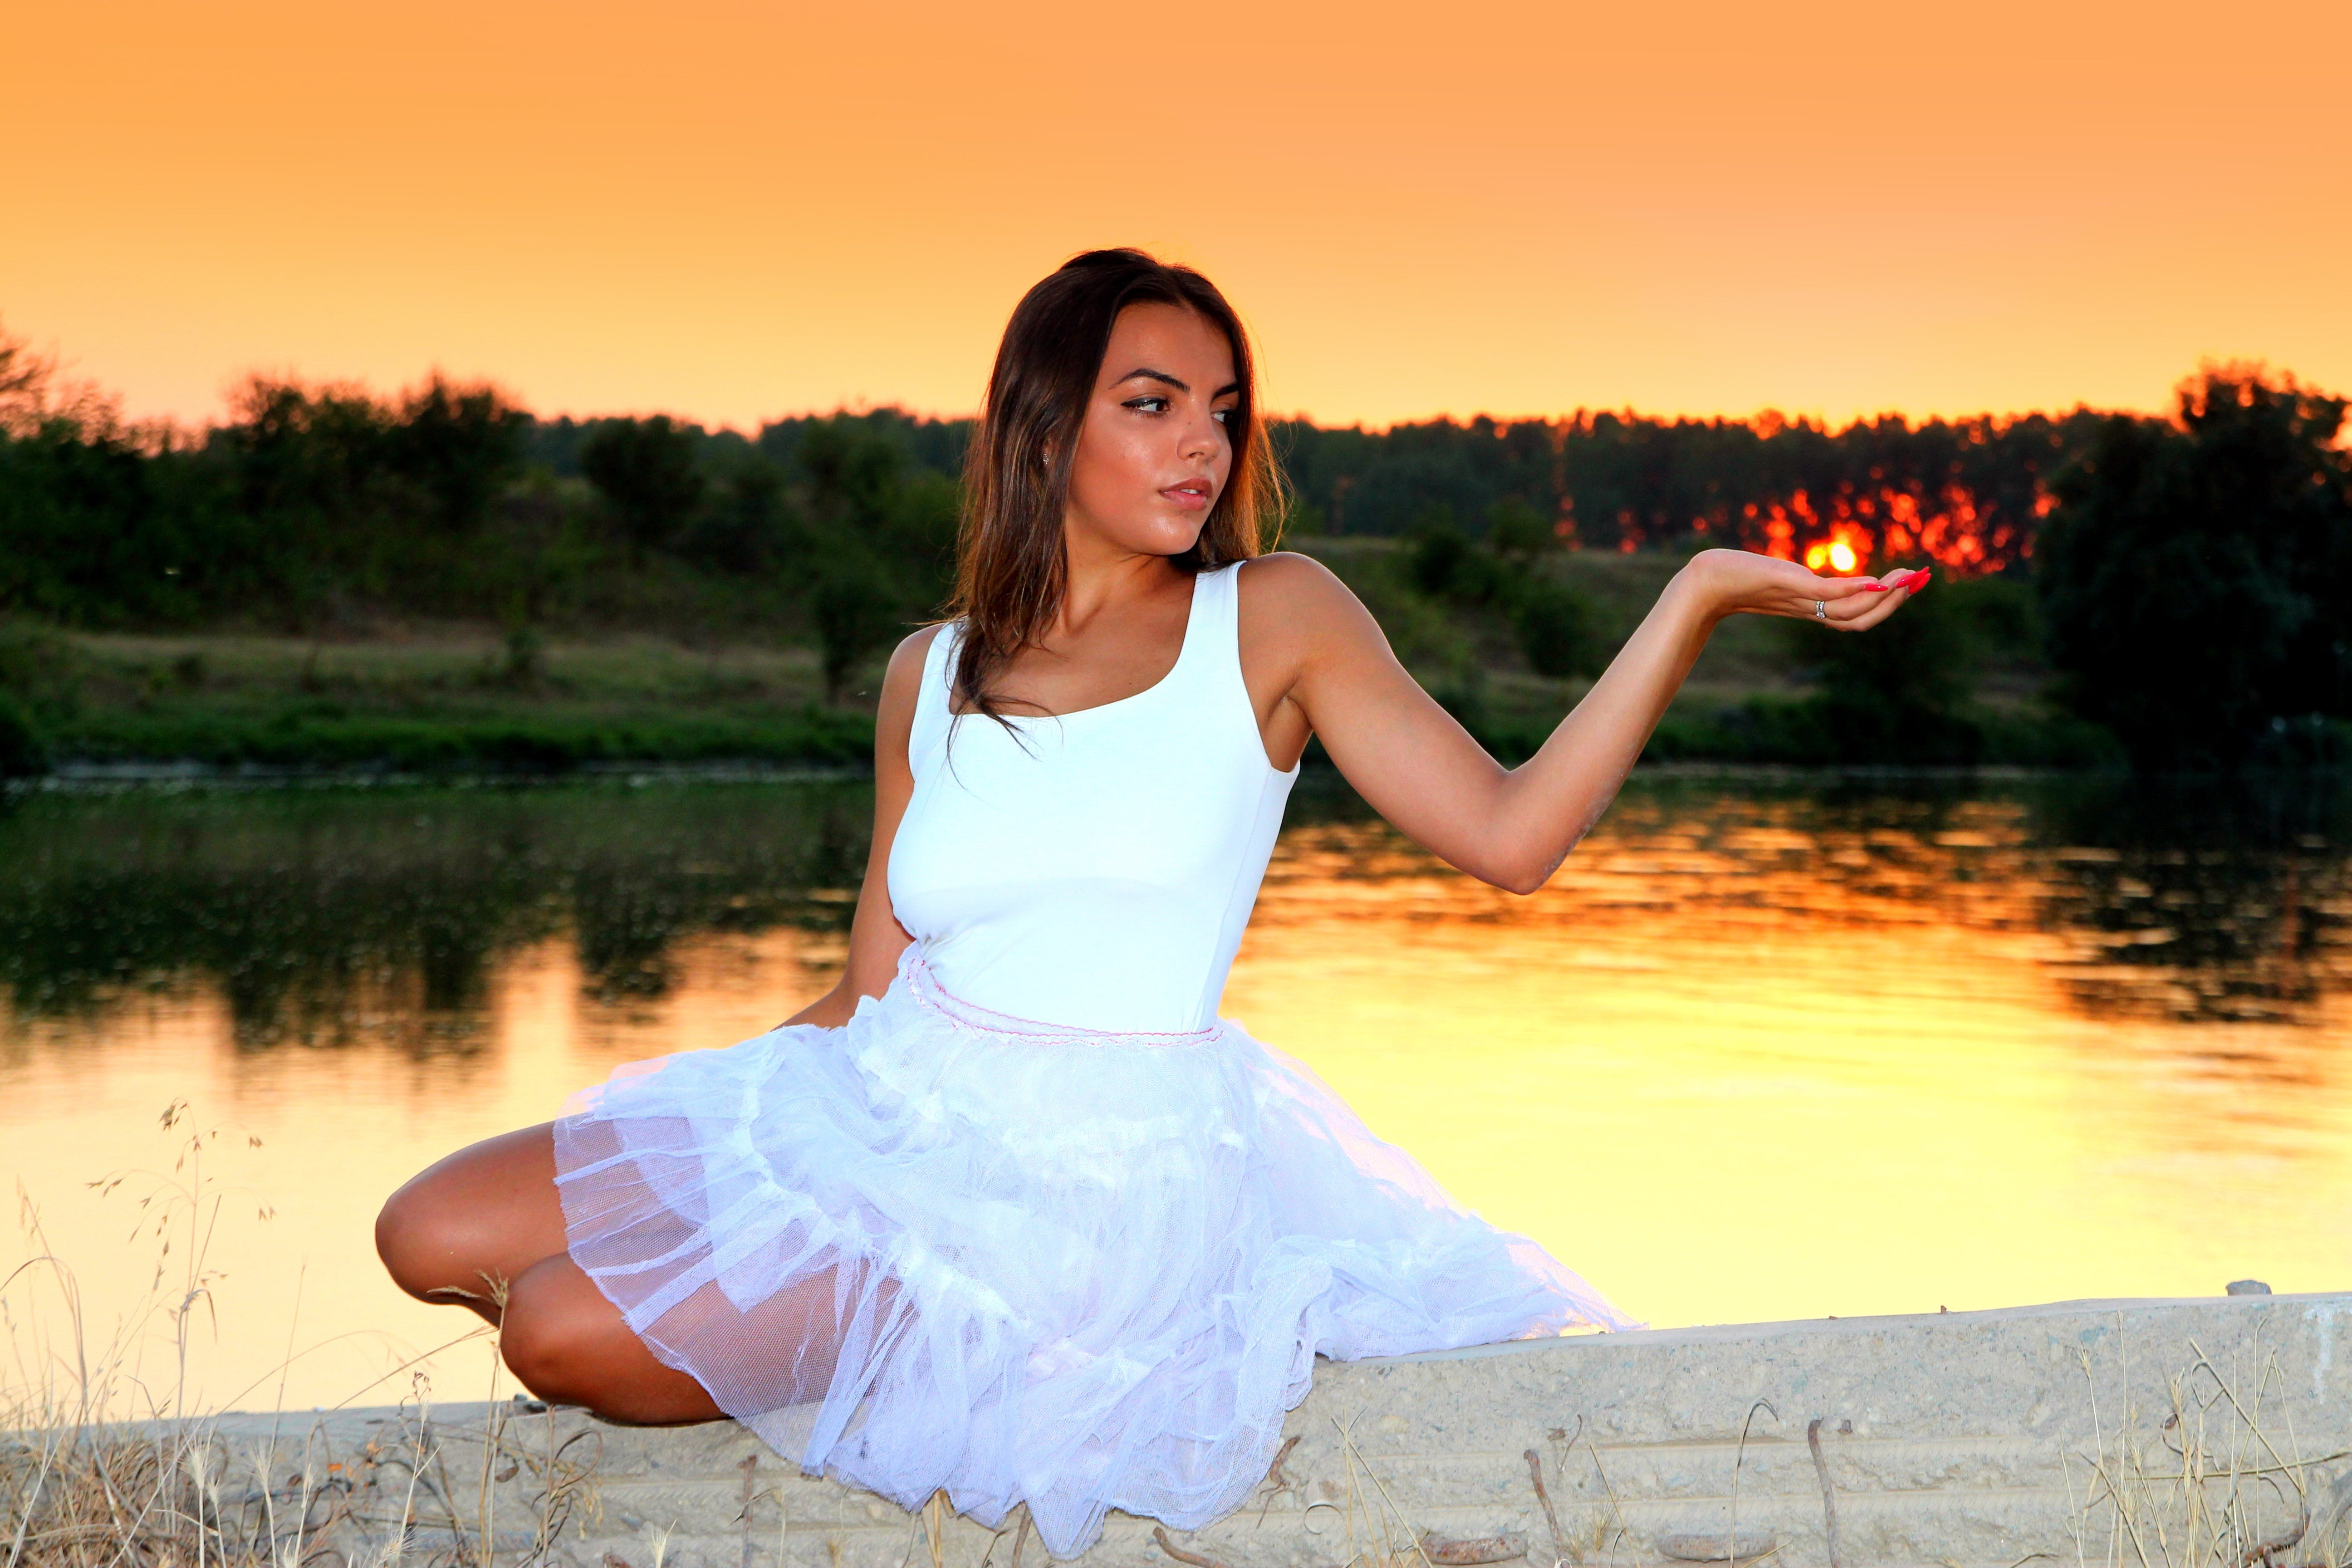 Woman in White Square Neckline Sleeveless Dress Sitting on Beige Wall Beside Body of Water during Golden Time